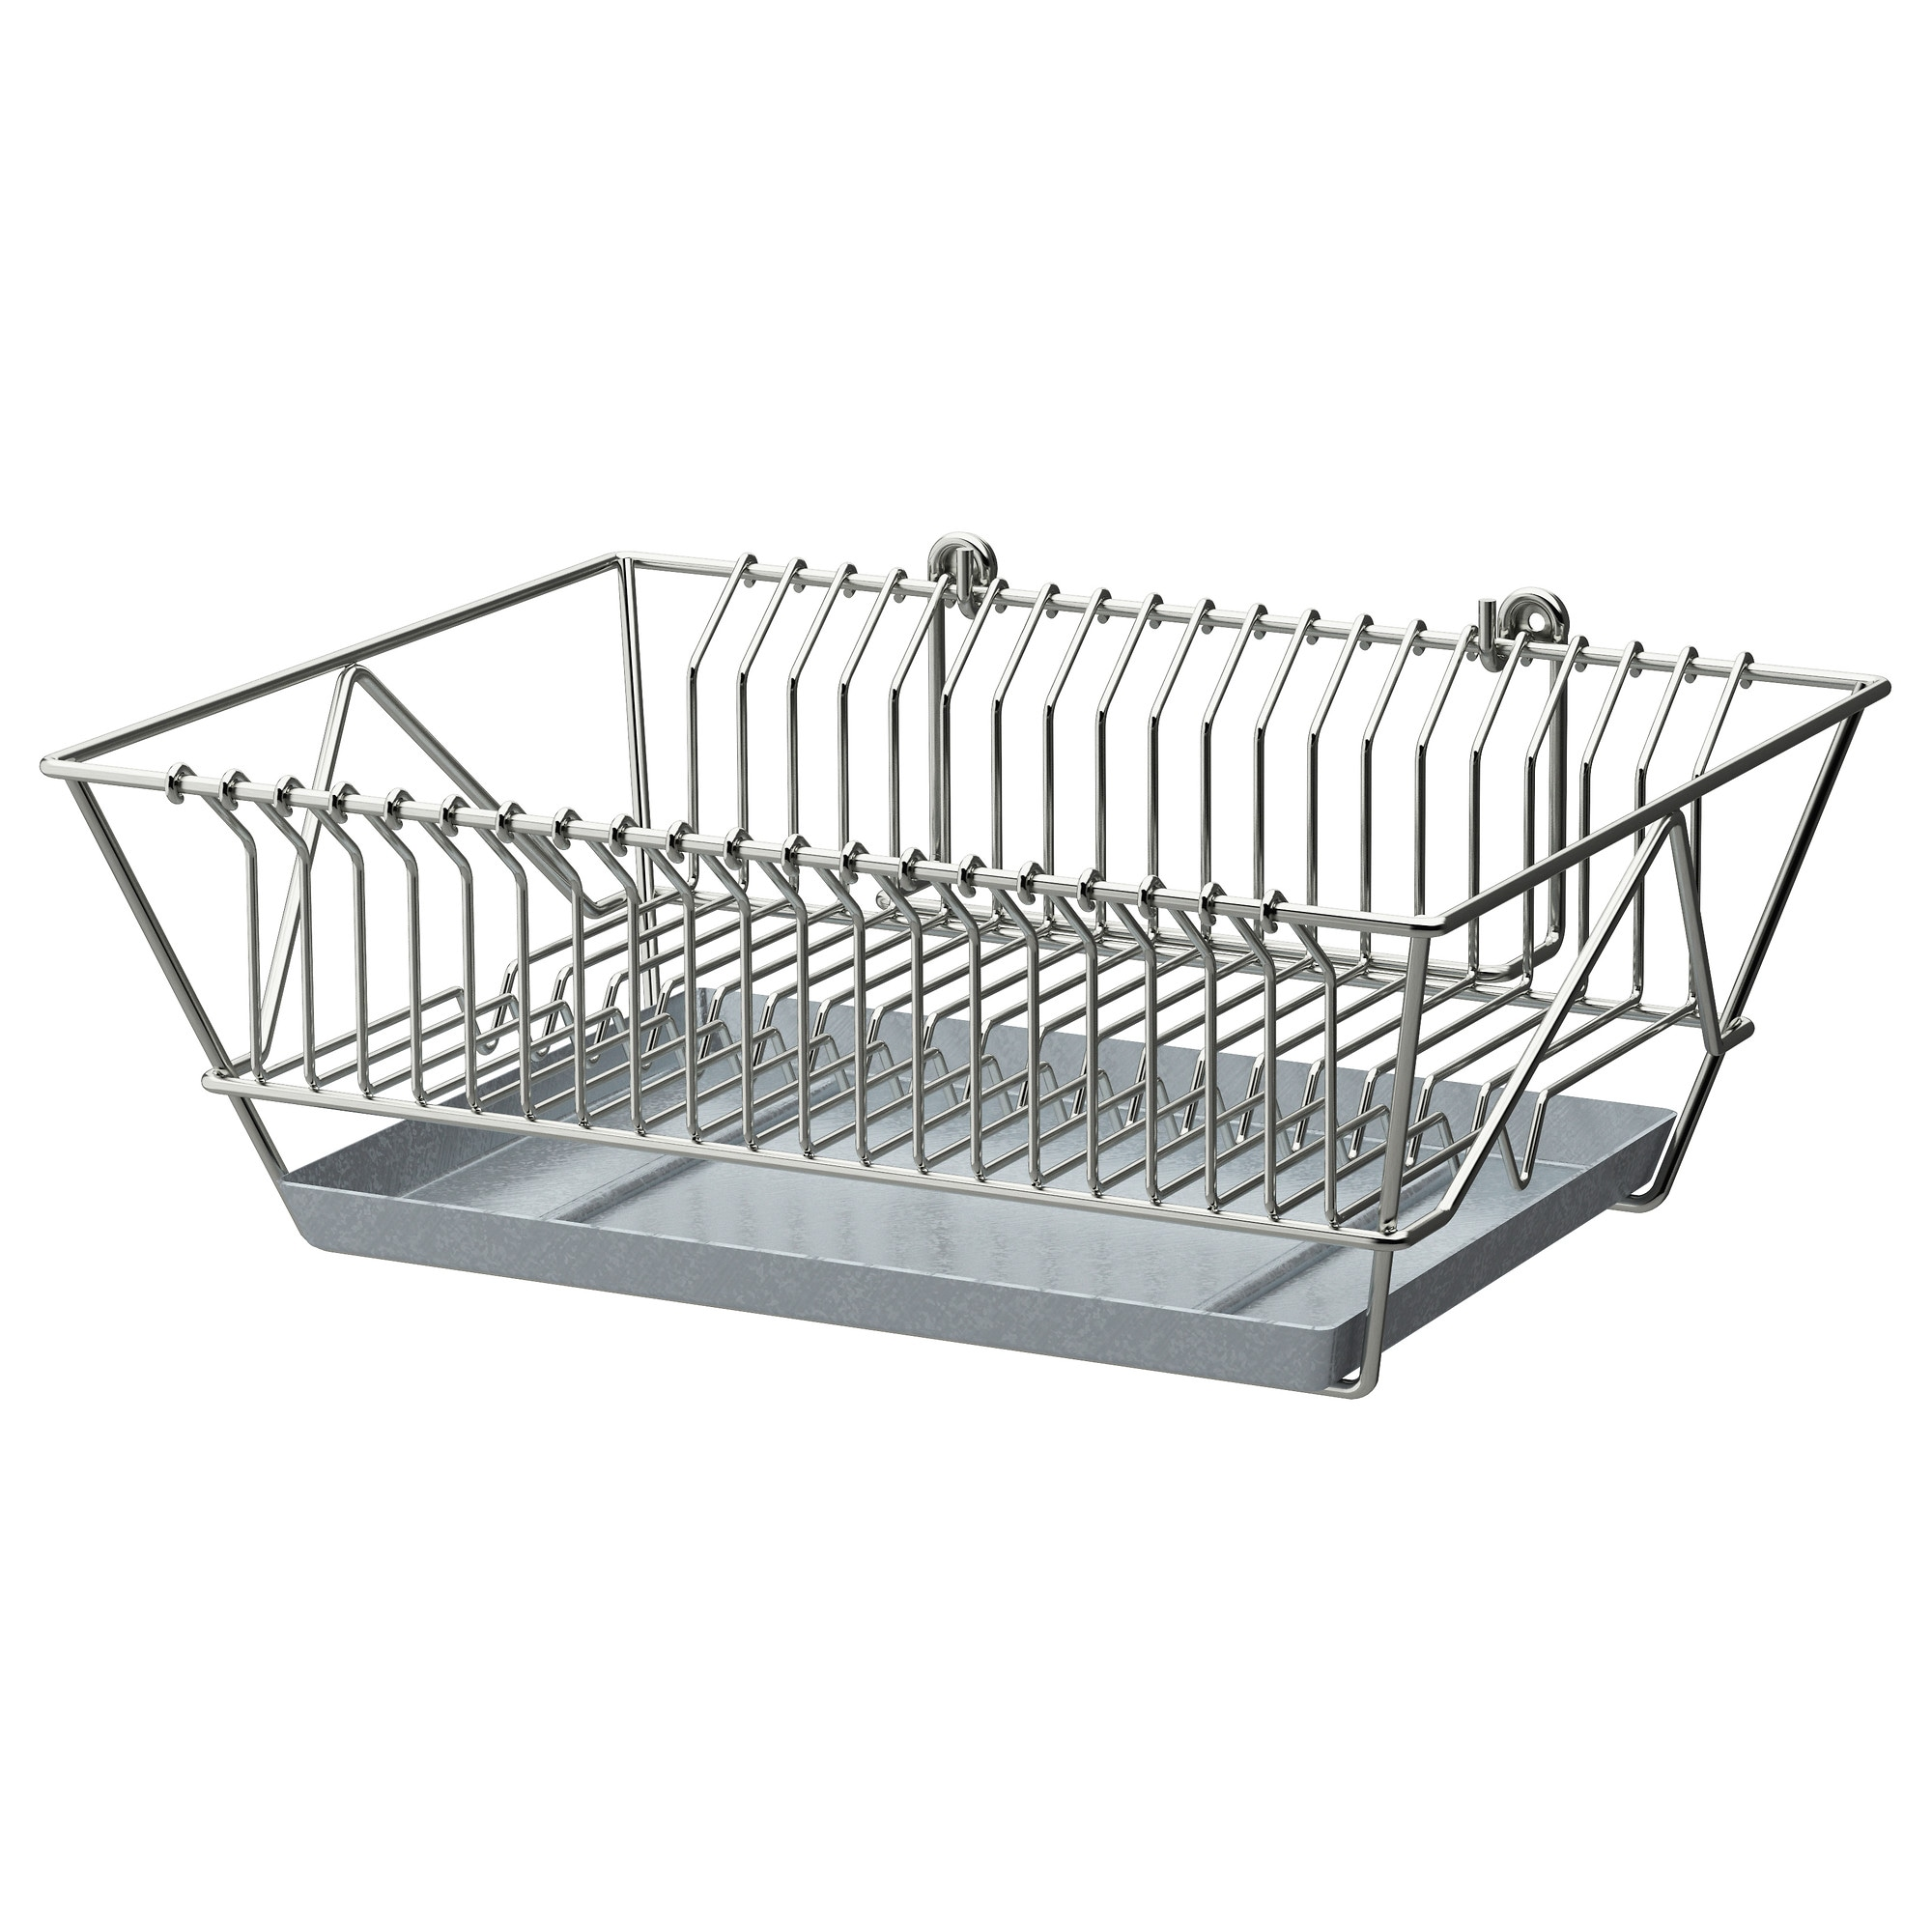 Kitchen Rack Kitchen Storage Organization Ikea